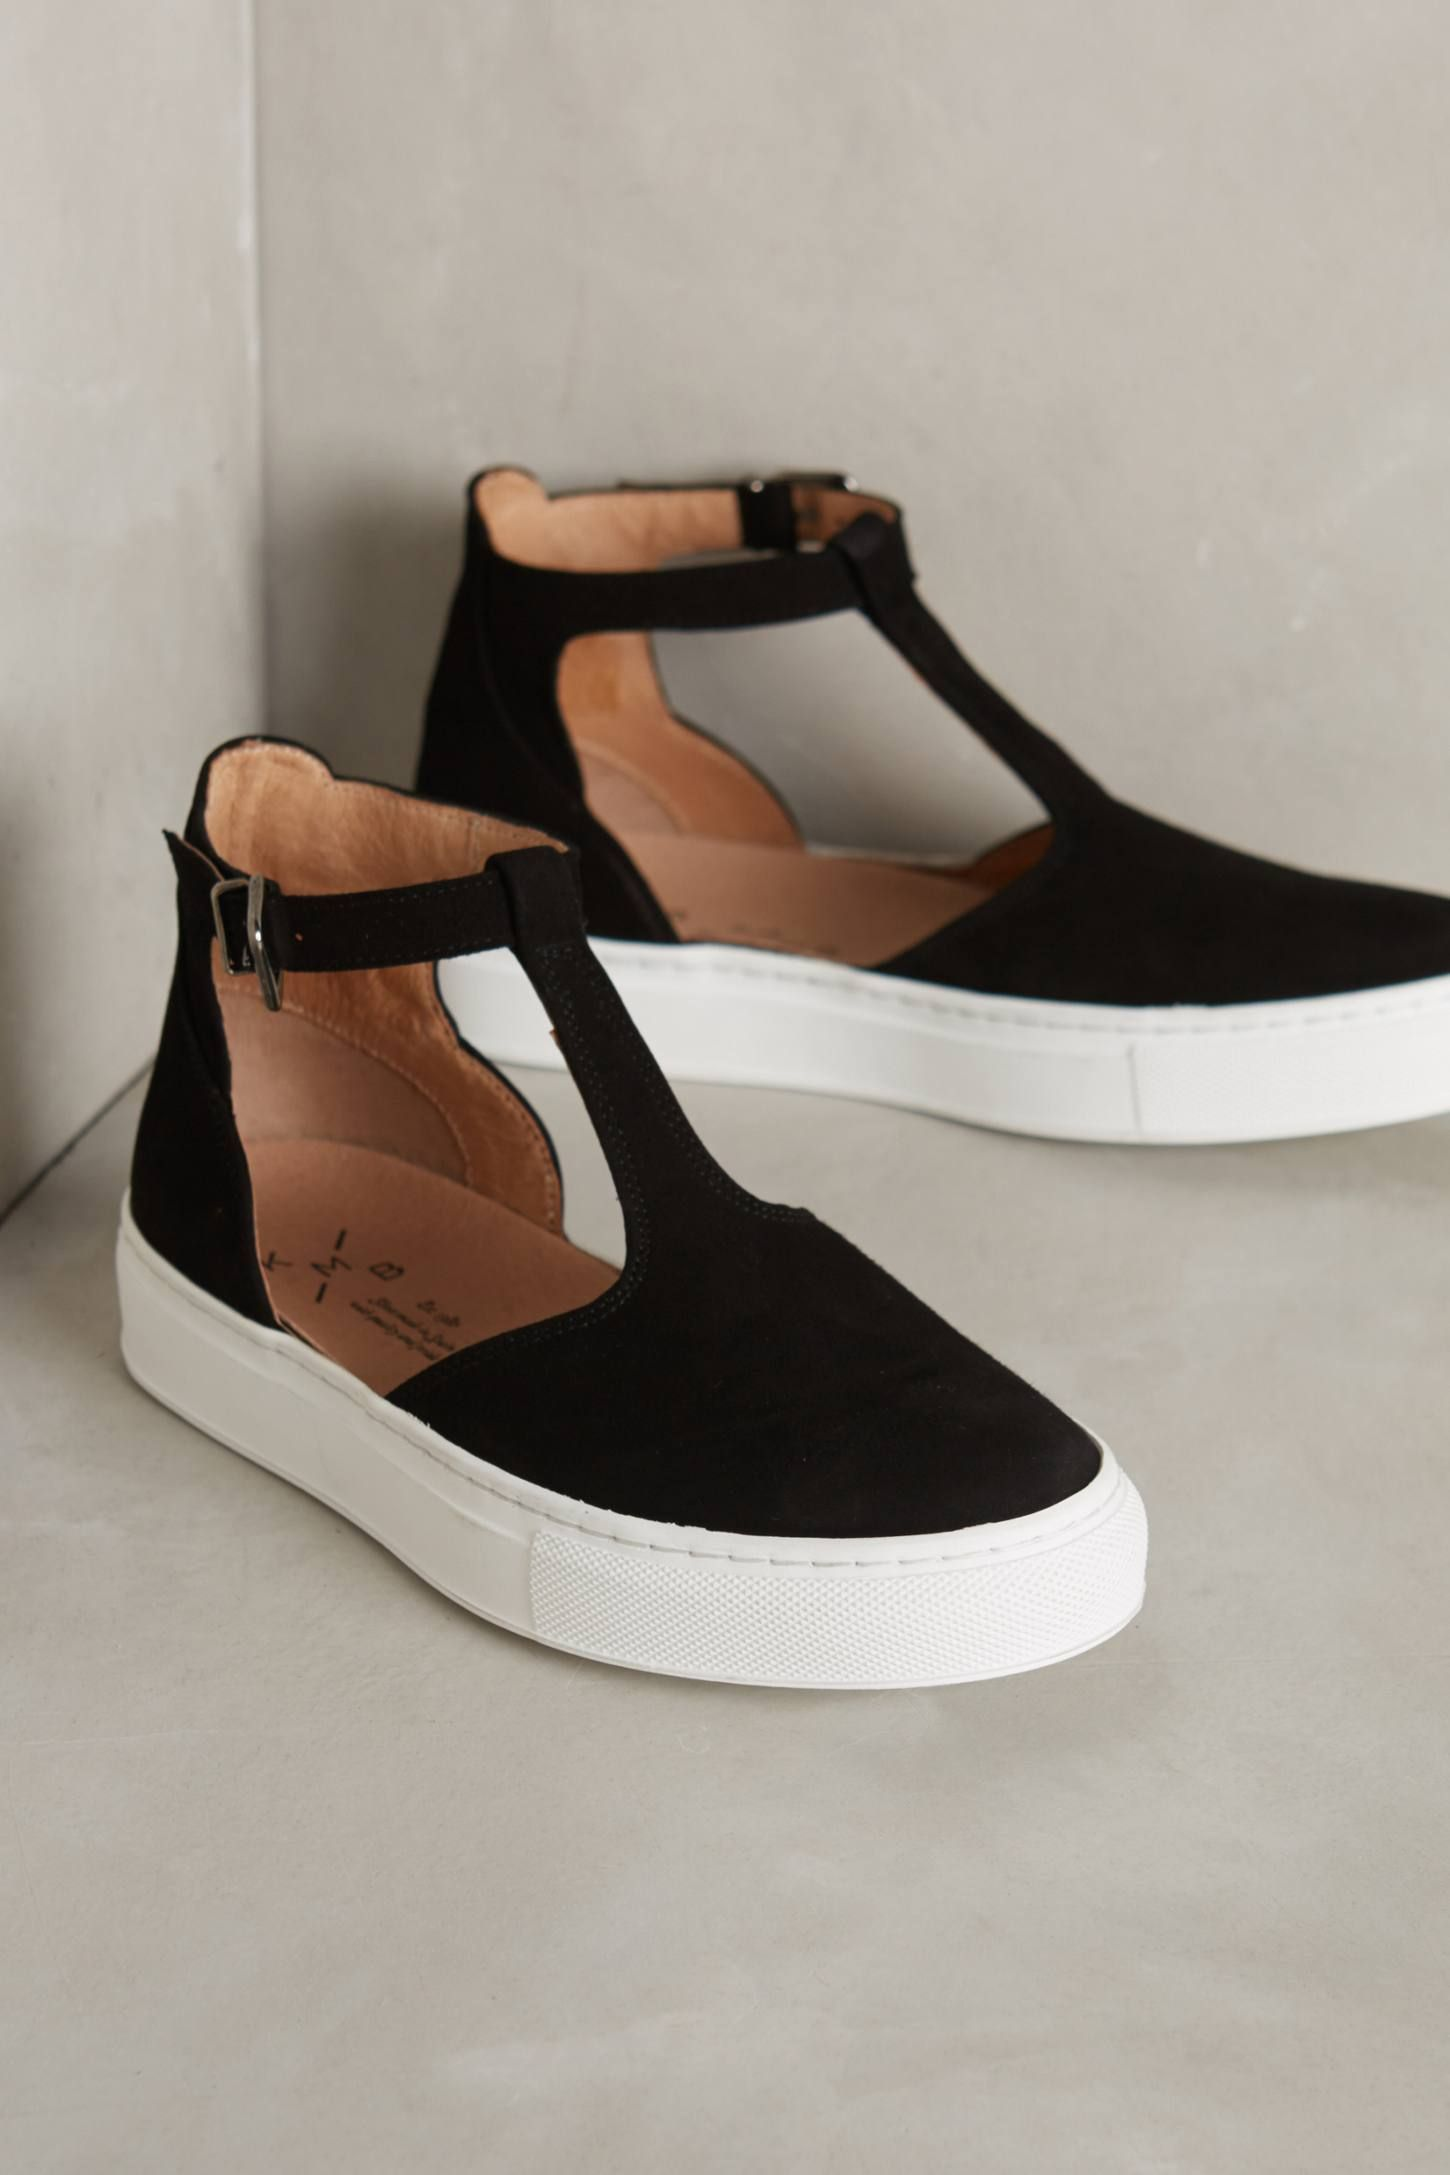 kmb tstrap sneakers anthropologiecom shoes